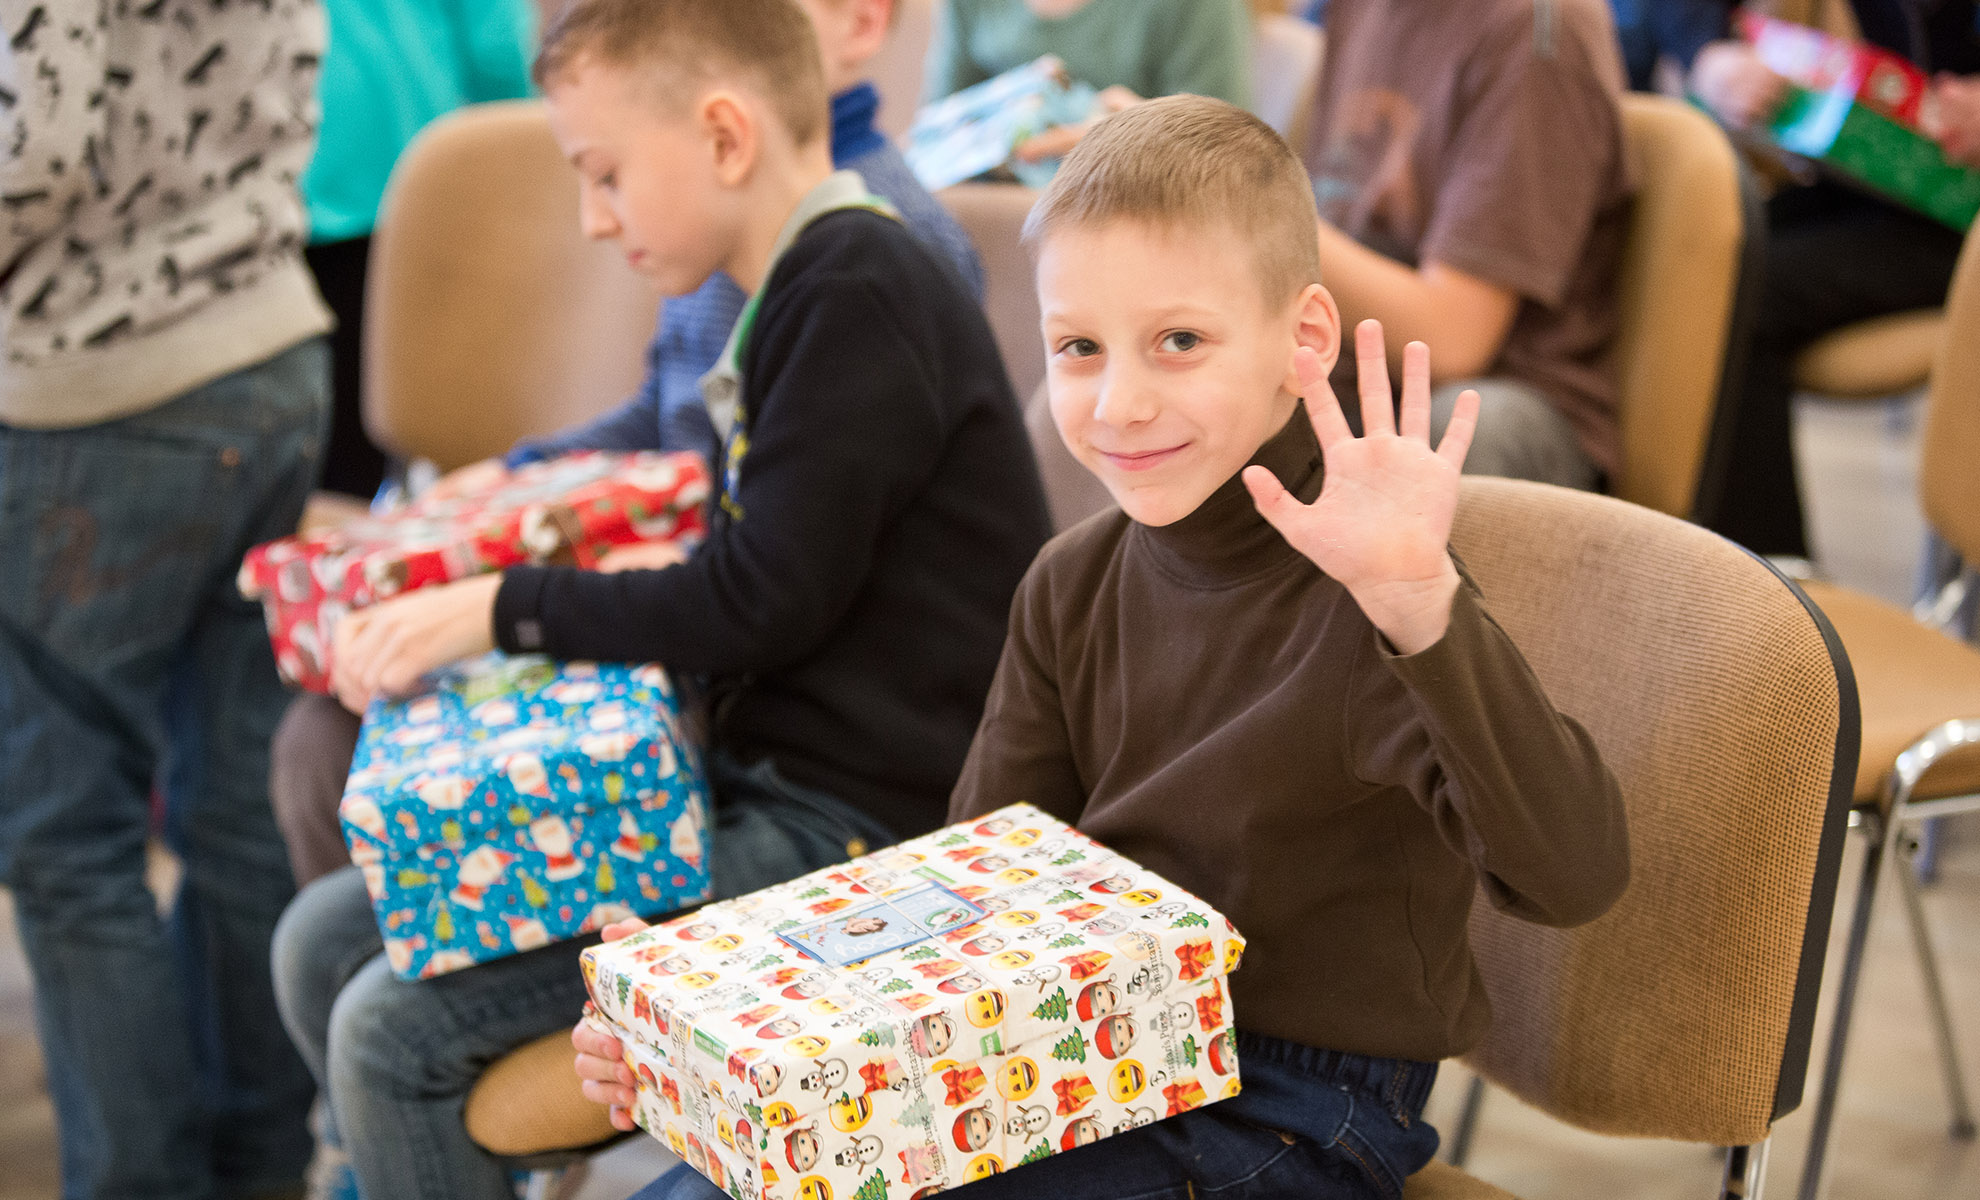 Boy waving with shoebox gift